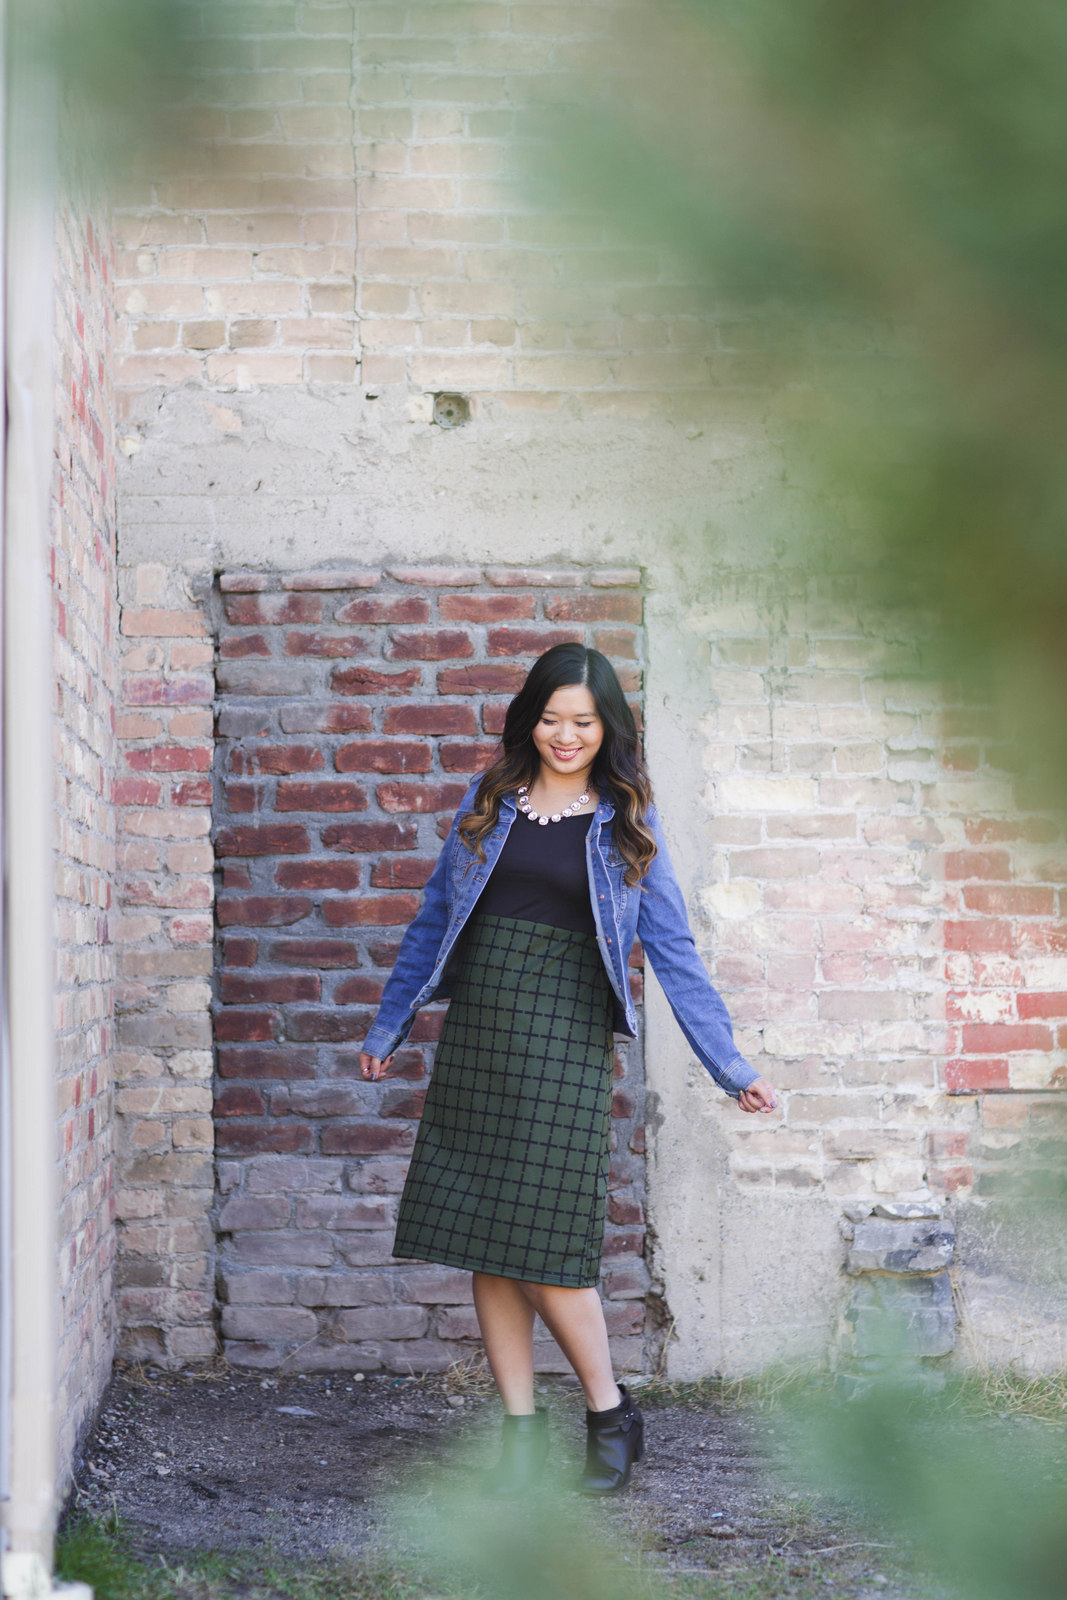 London Bridges Designs mama dress